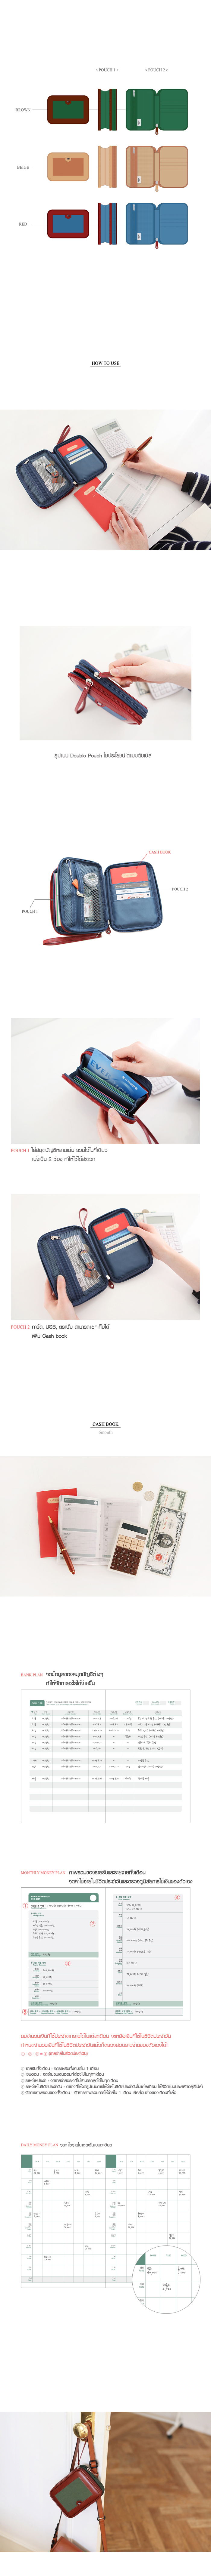 basicm-money-pouch-info2.jpg